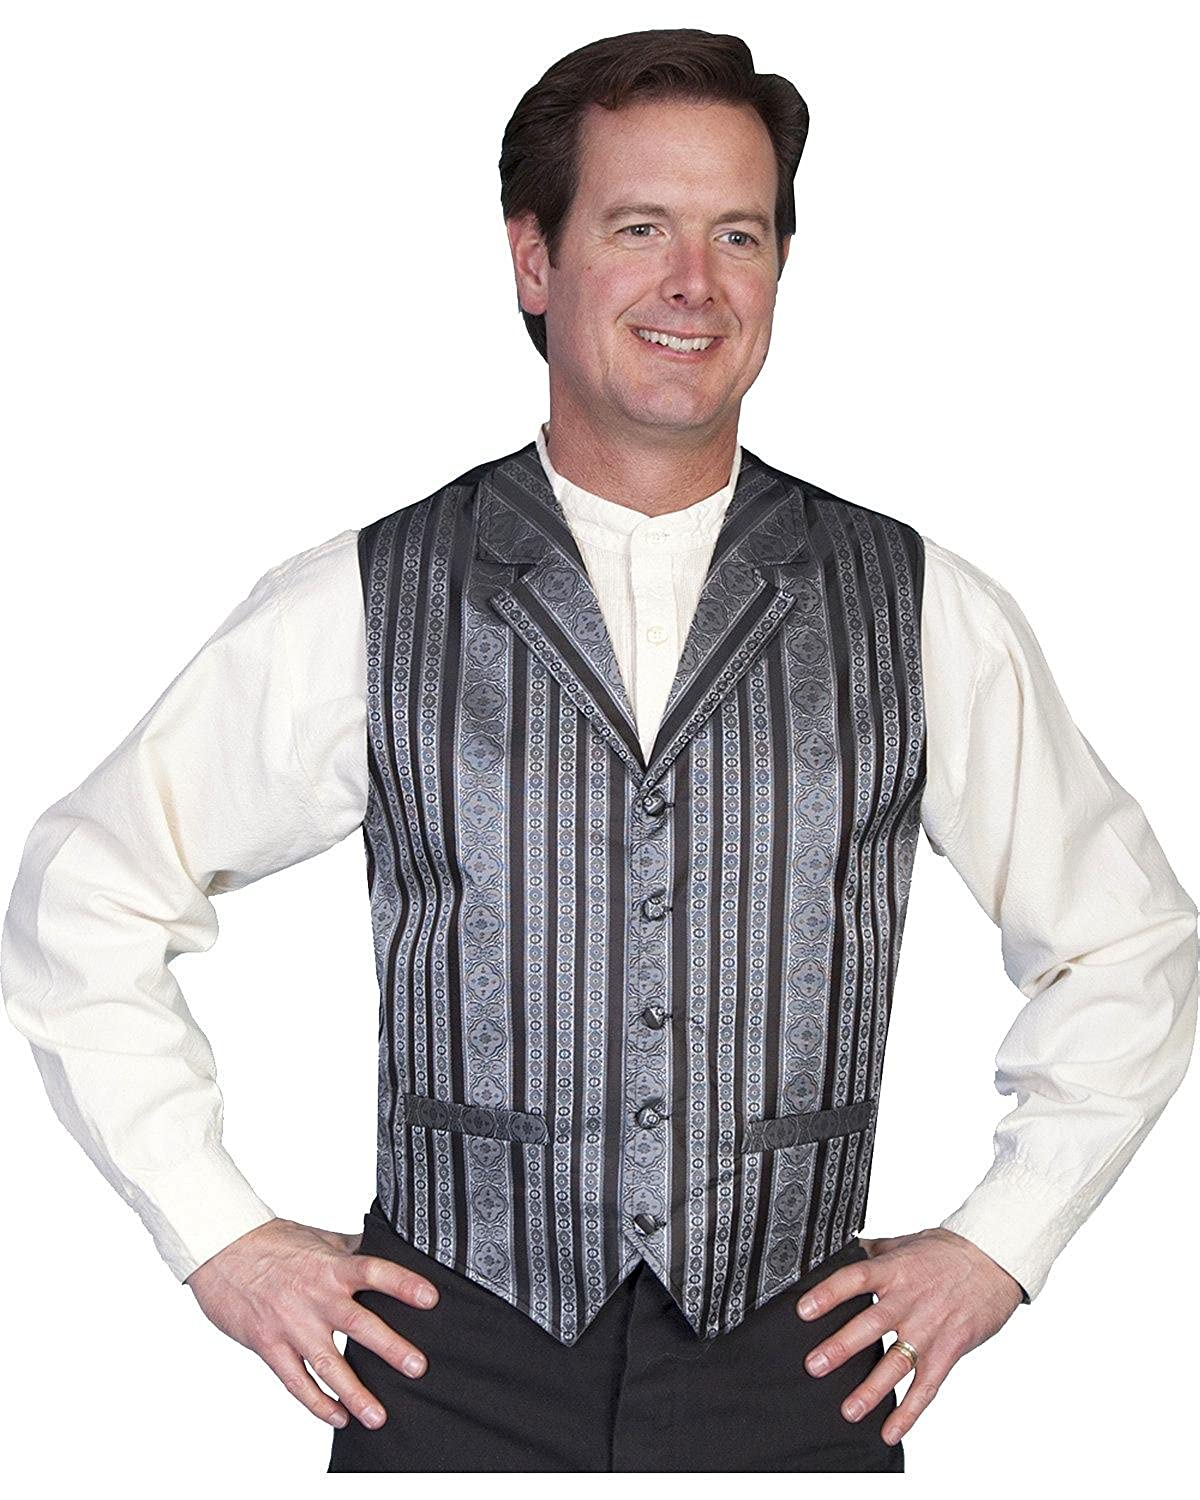 Men's Vintage Vests, Sweater Vests Rangewear By Scully Mens Rangewear Waverly Vest Big And Tall - Rw167x Blk $64.00 AT vintagedancer.com